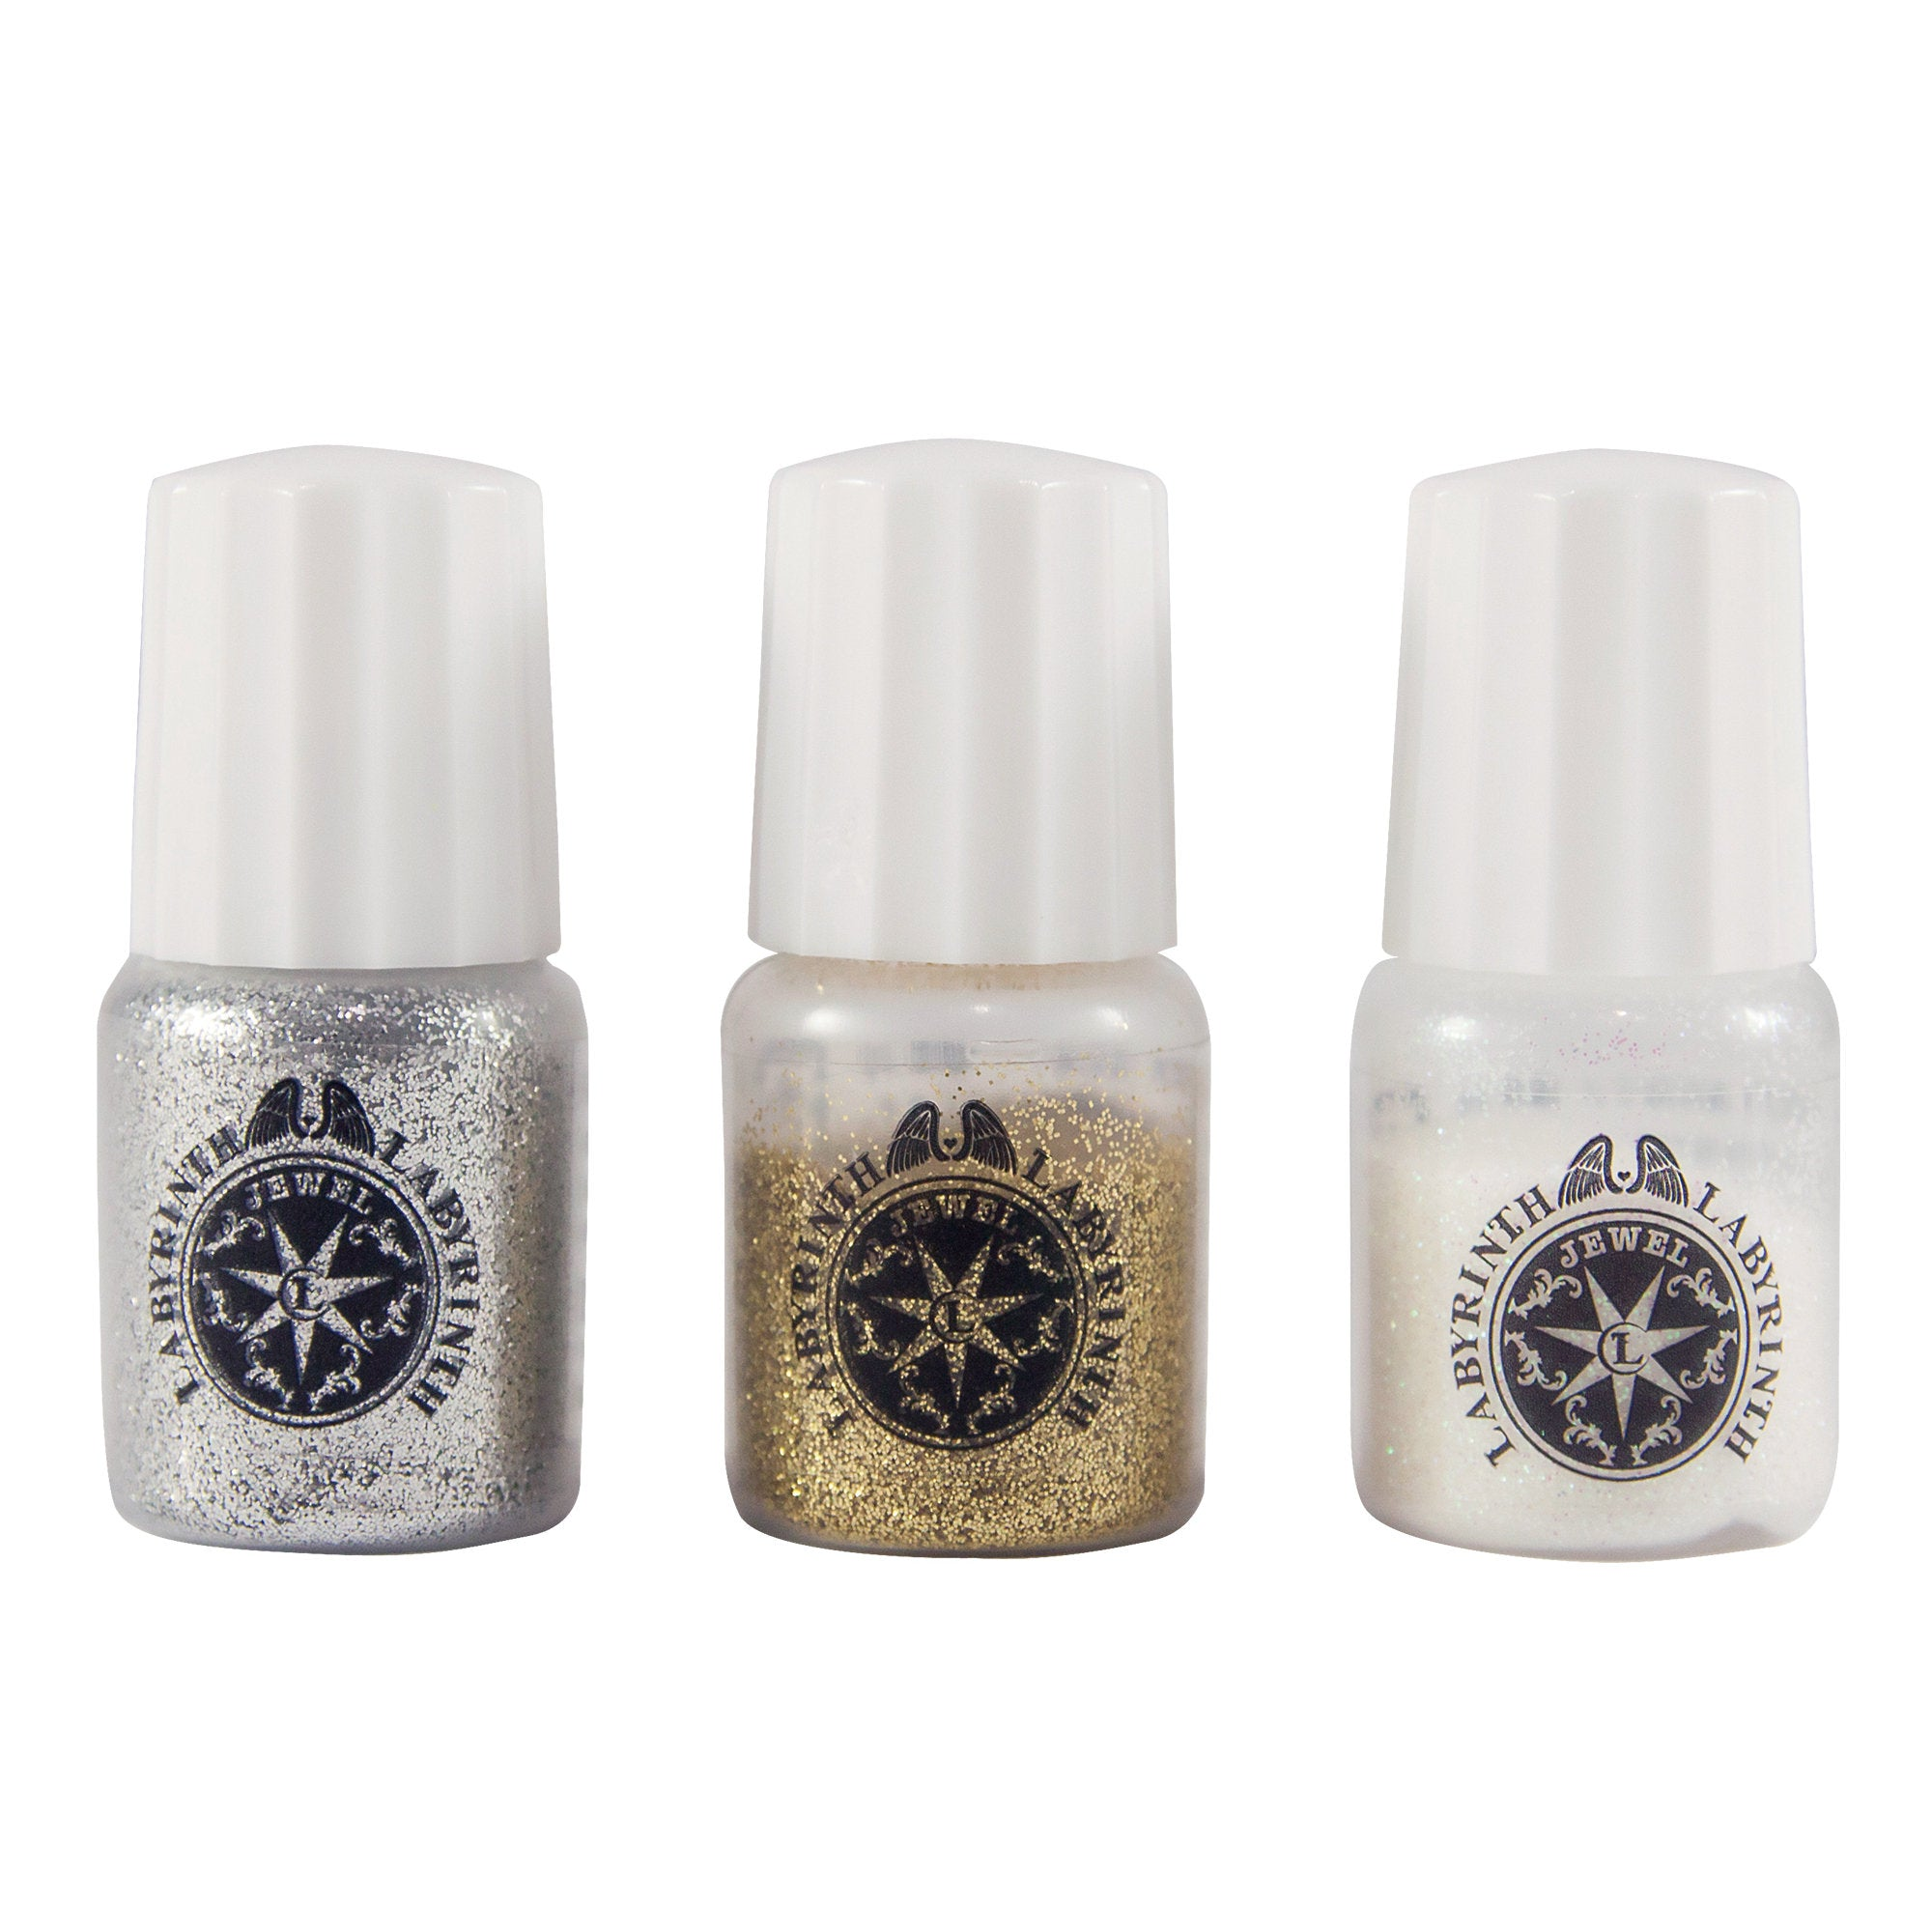 Padico Glitter Set for Resin Crafts - Gold, Silver, White